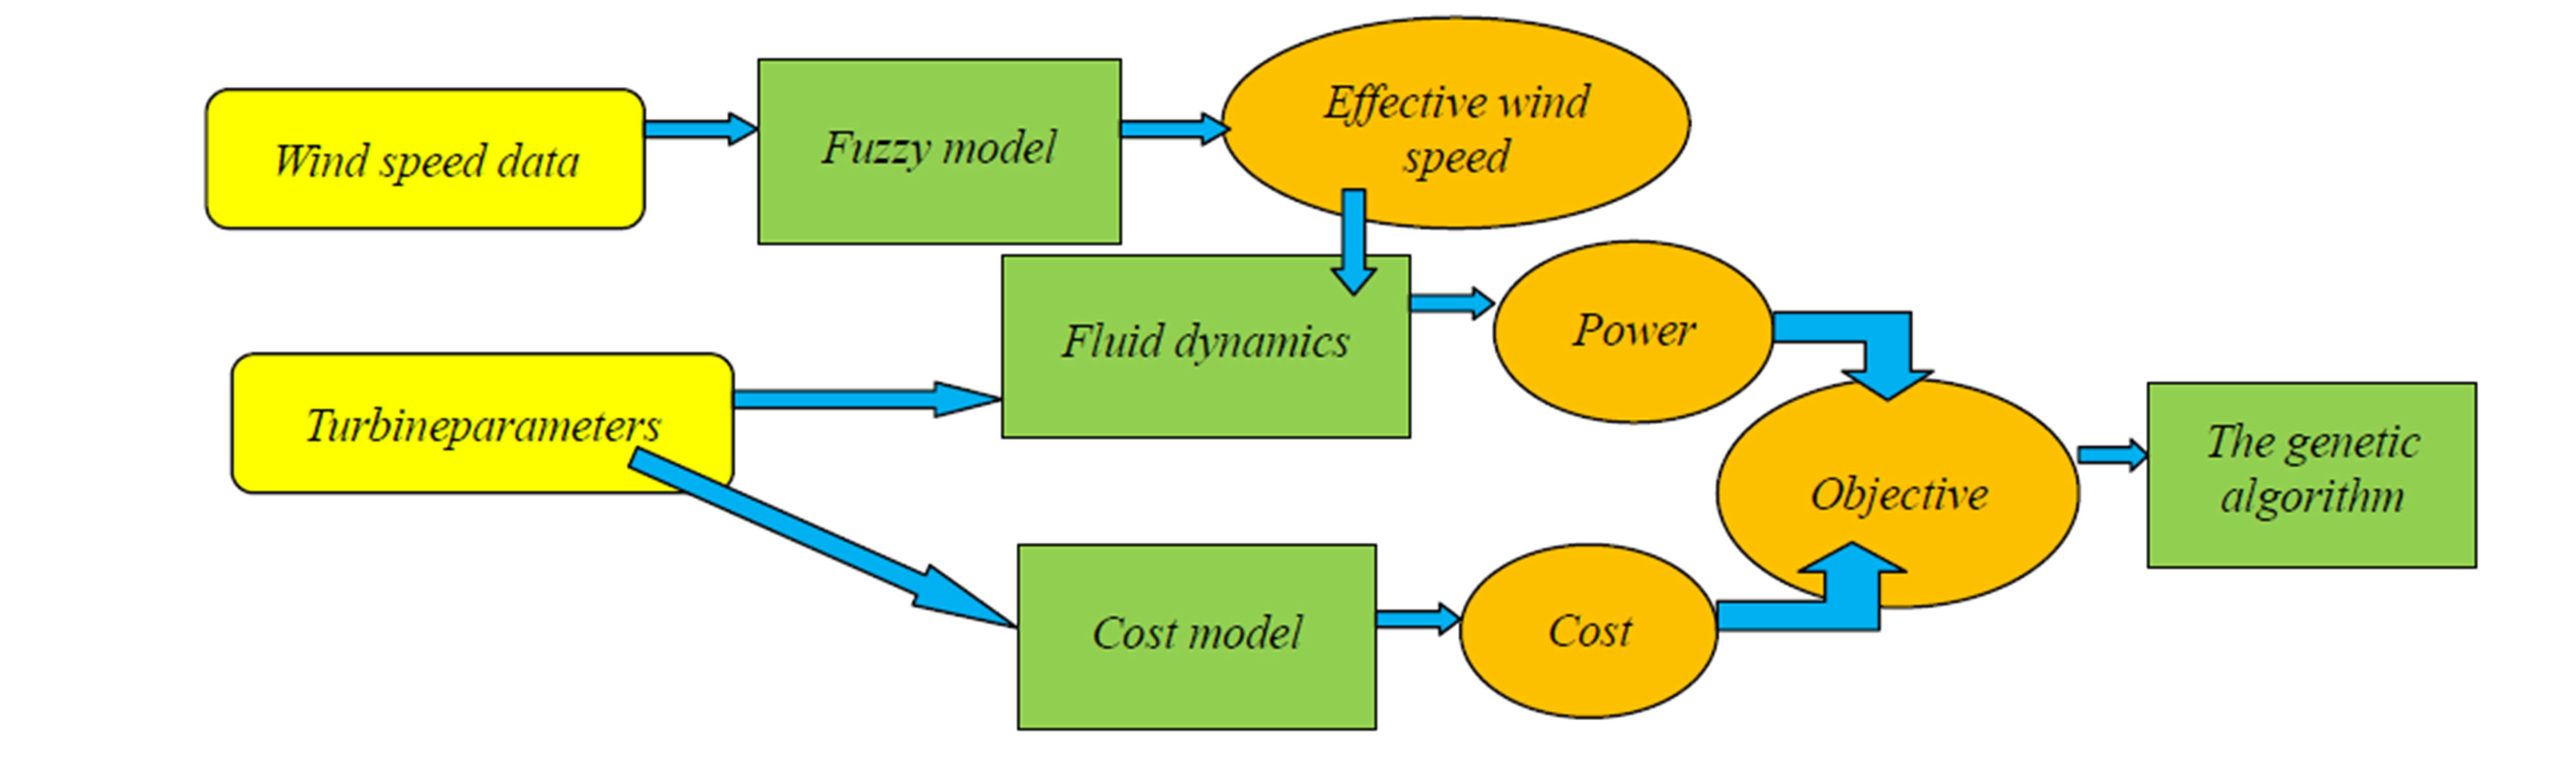 wind turbine construction process pdf